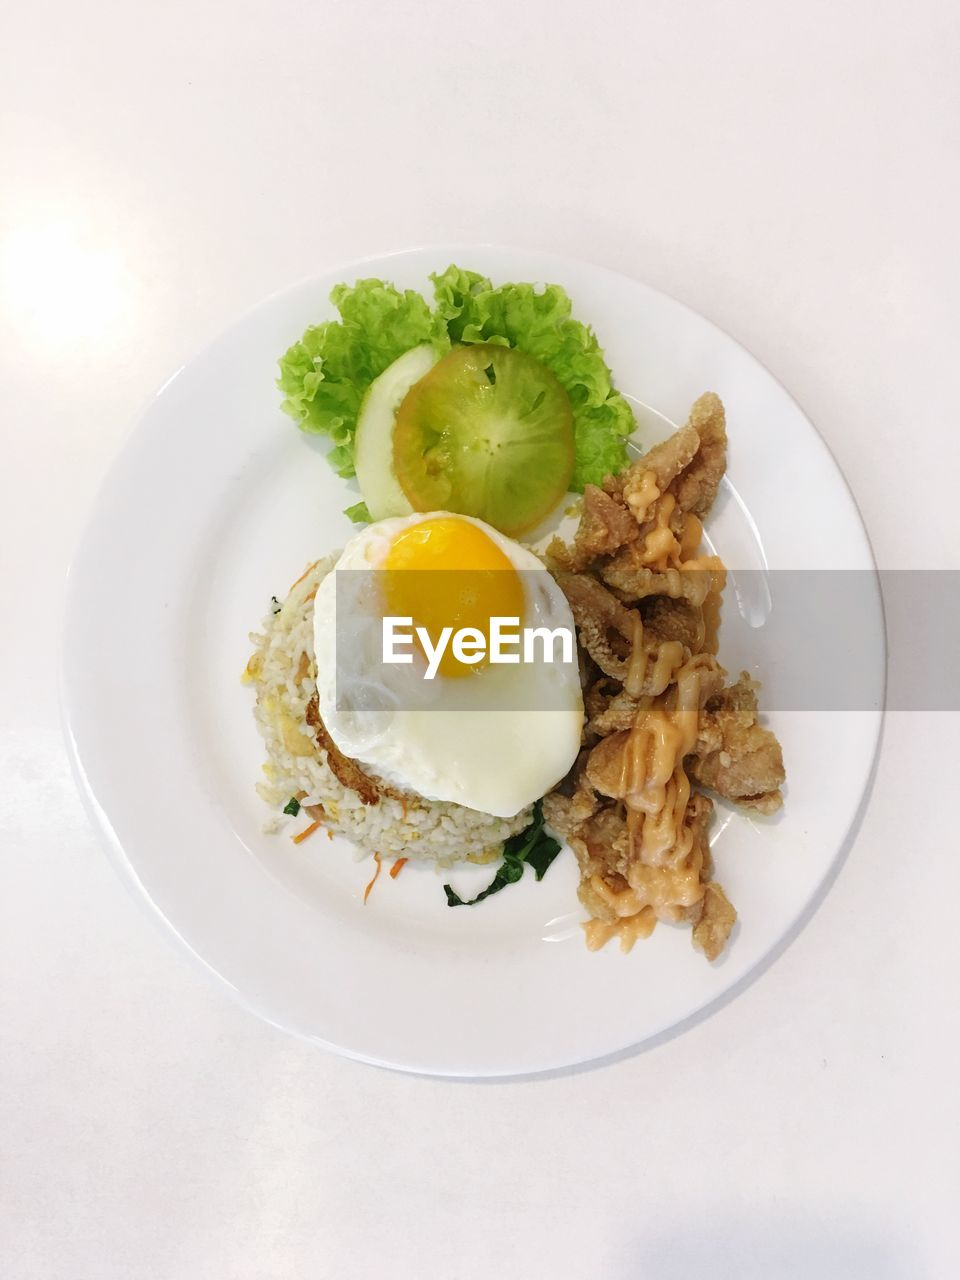 Breakfast in plate on white background